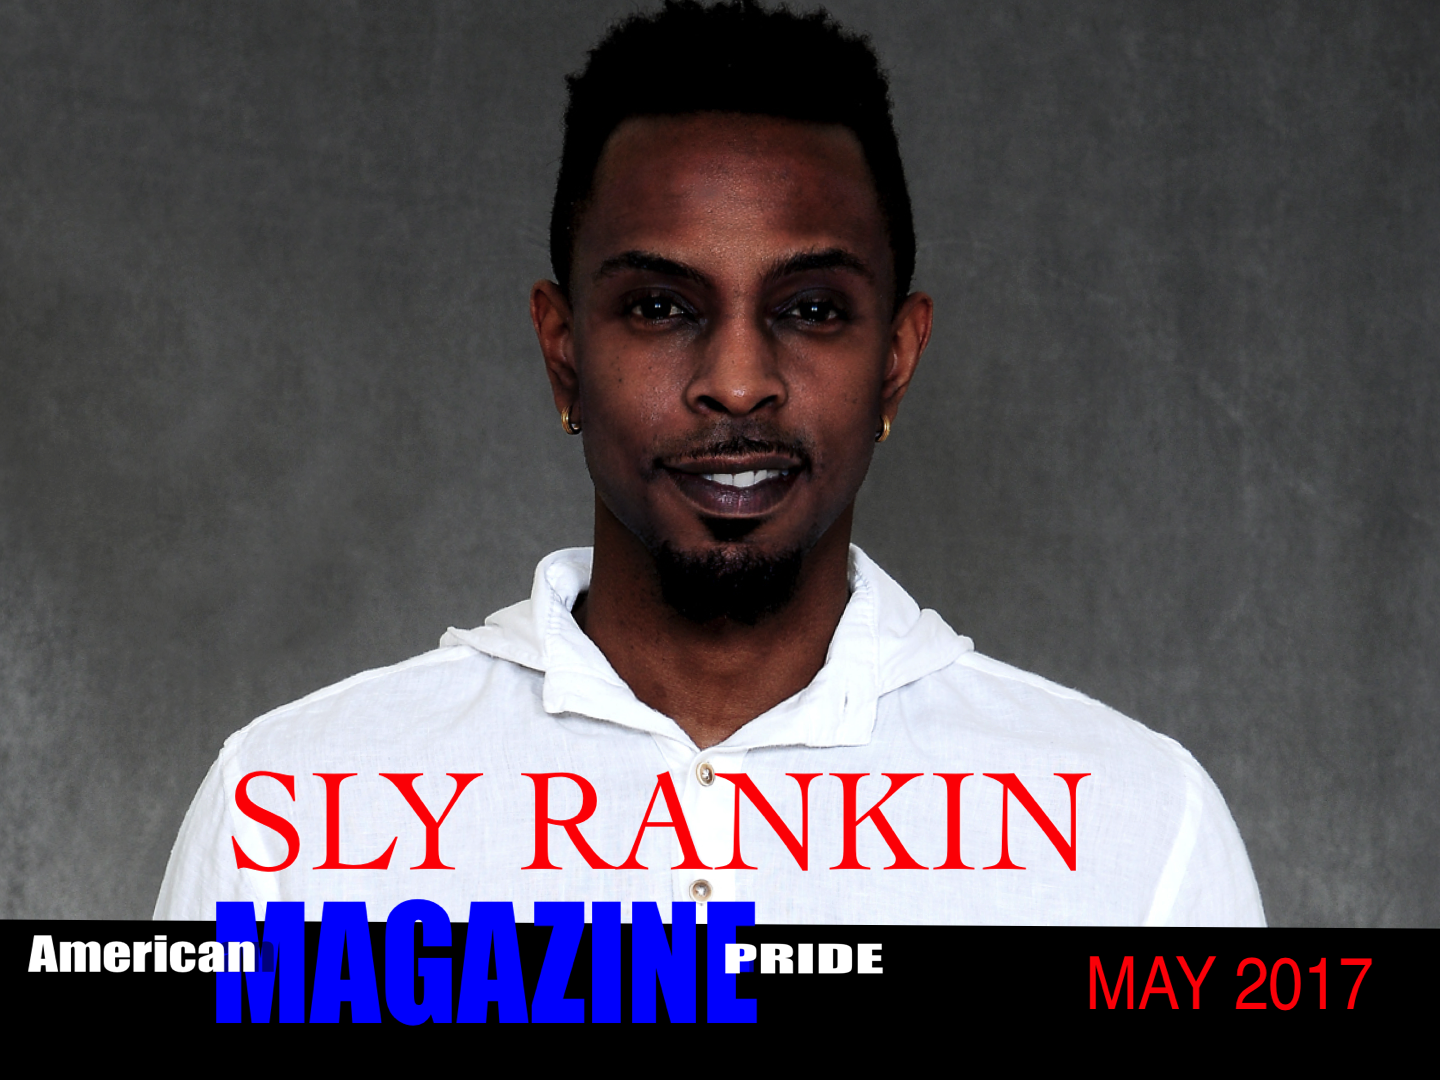 Sly Rankin Changing the Stereotypes